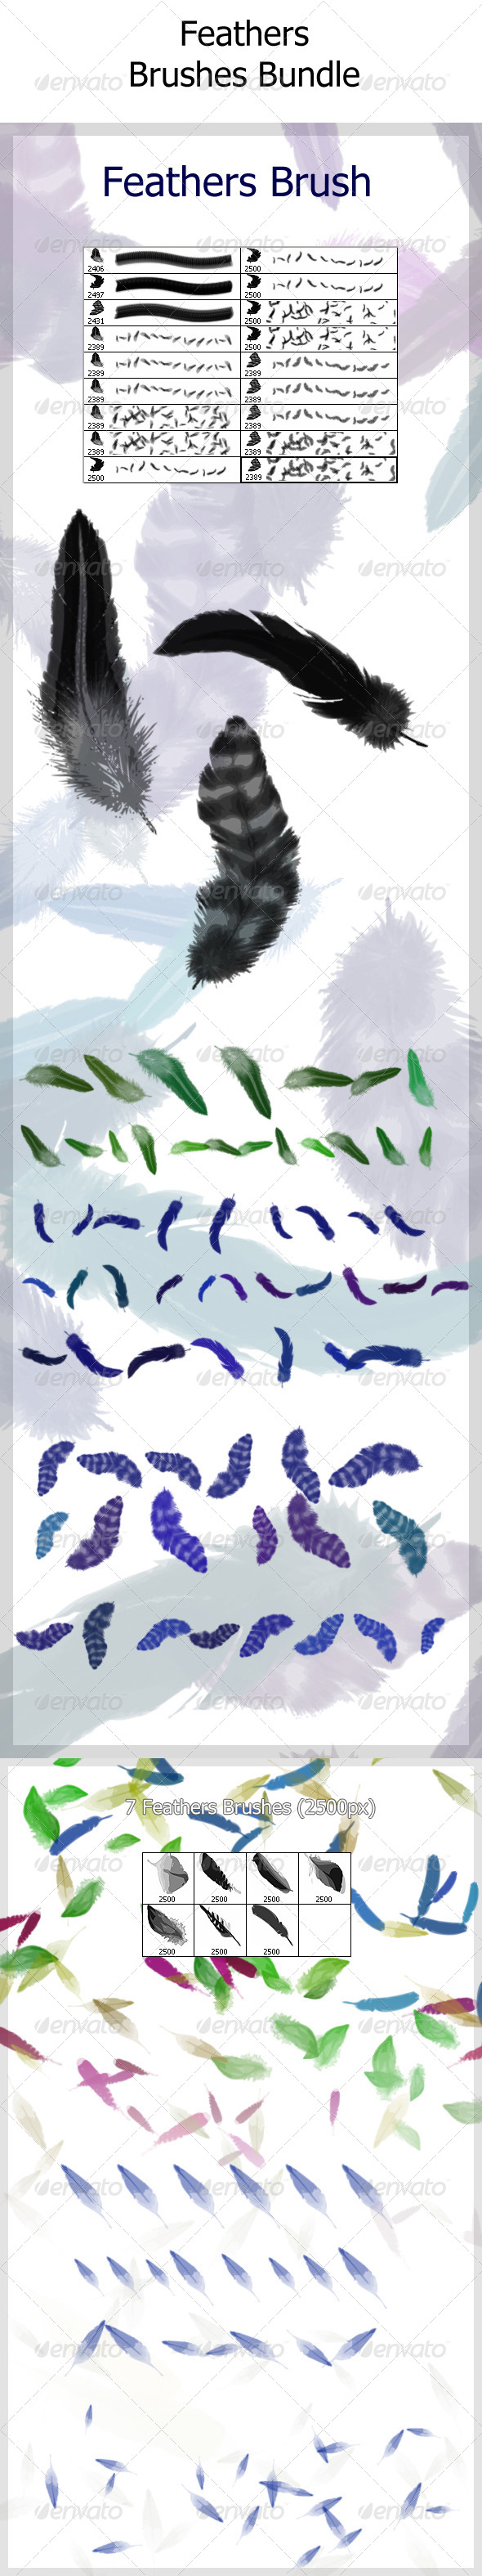 GraphicRiver Feathers Brushes Bundle 4613590